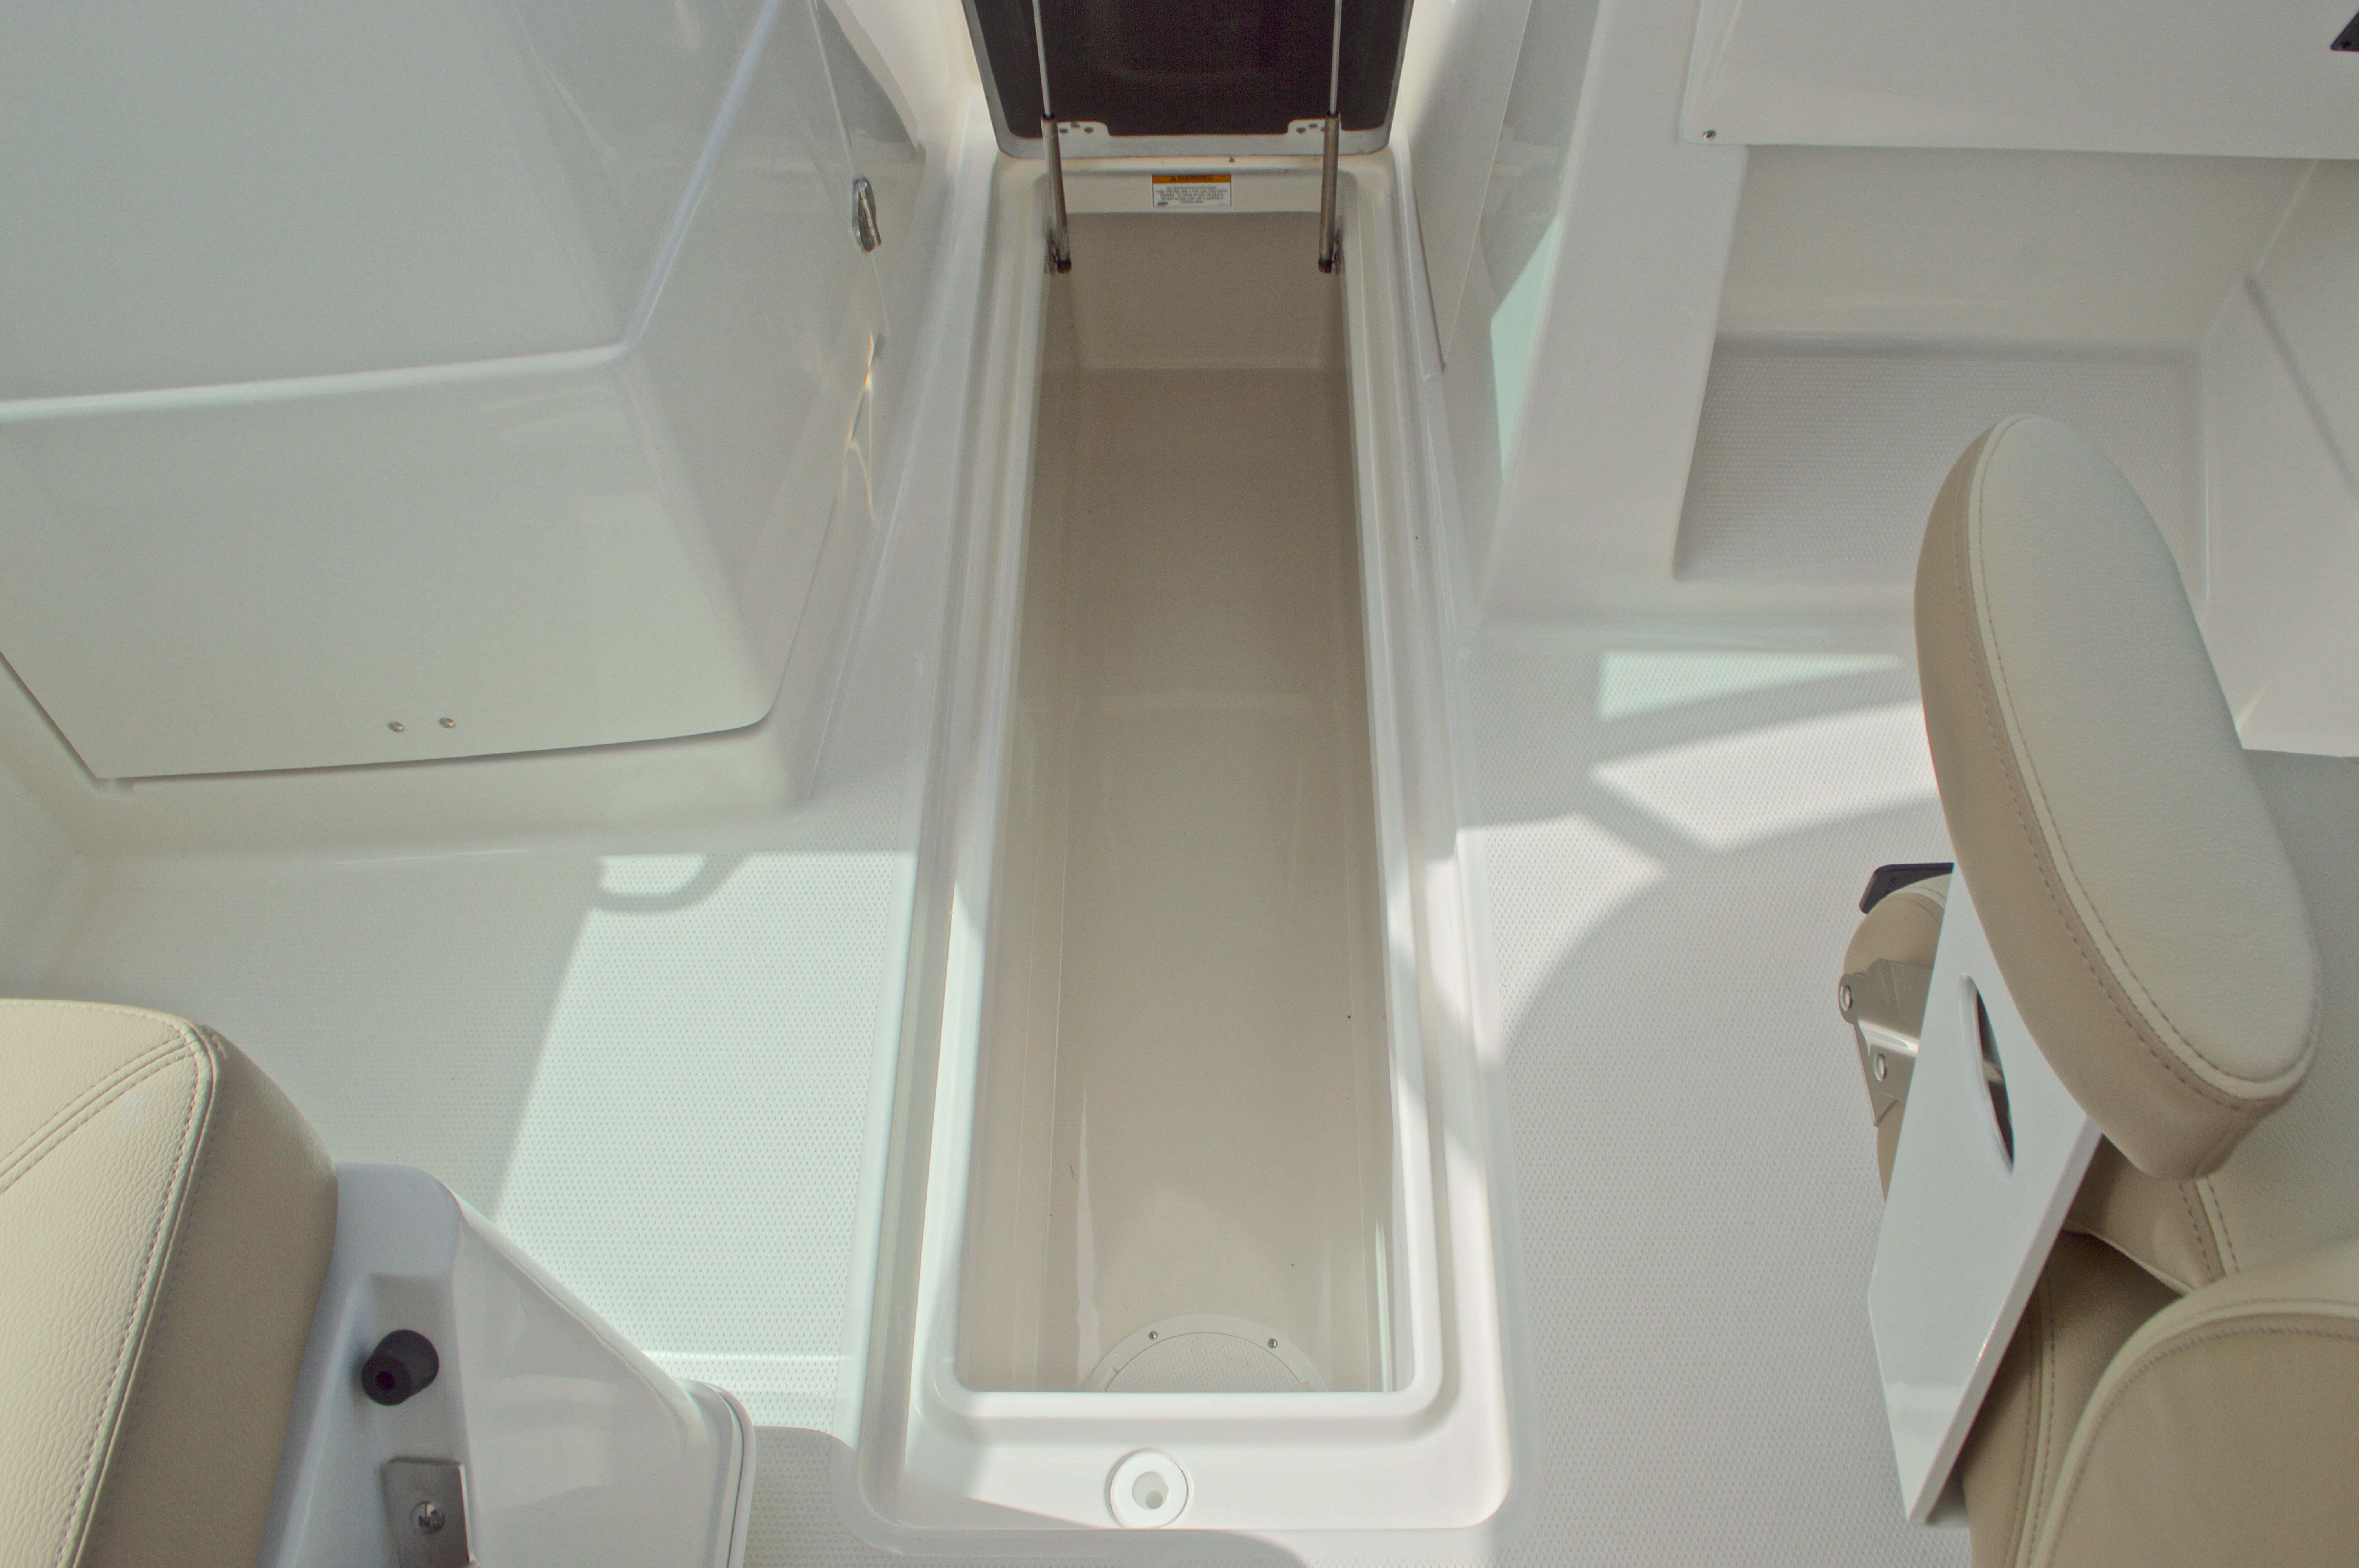 Thumbnail 55 for New 2017 Sailfish 275 Dual Console boat for sale in West Palm Beach, FL